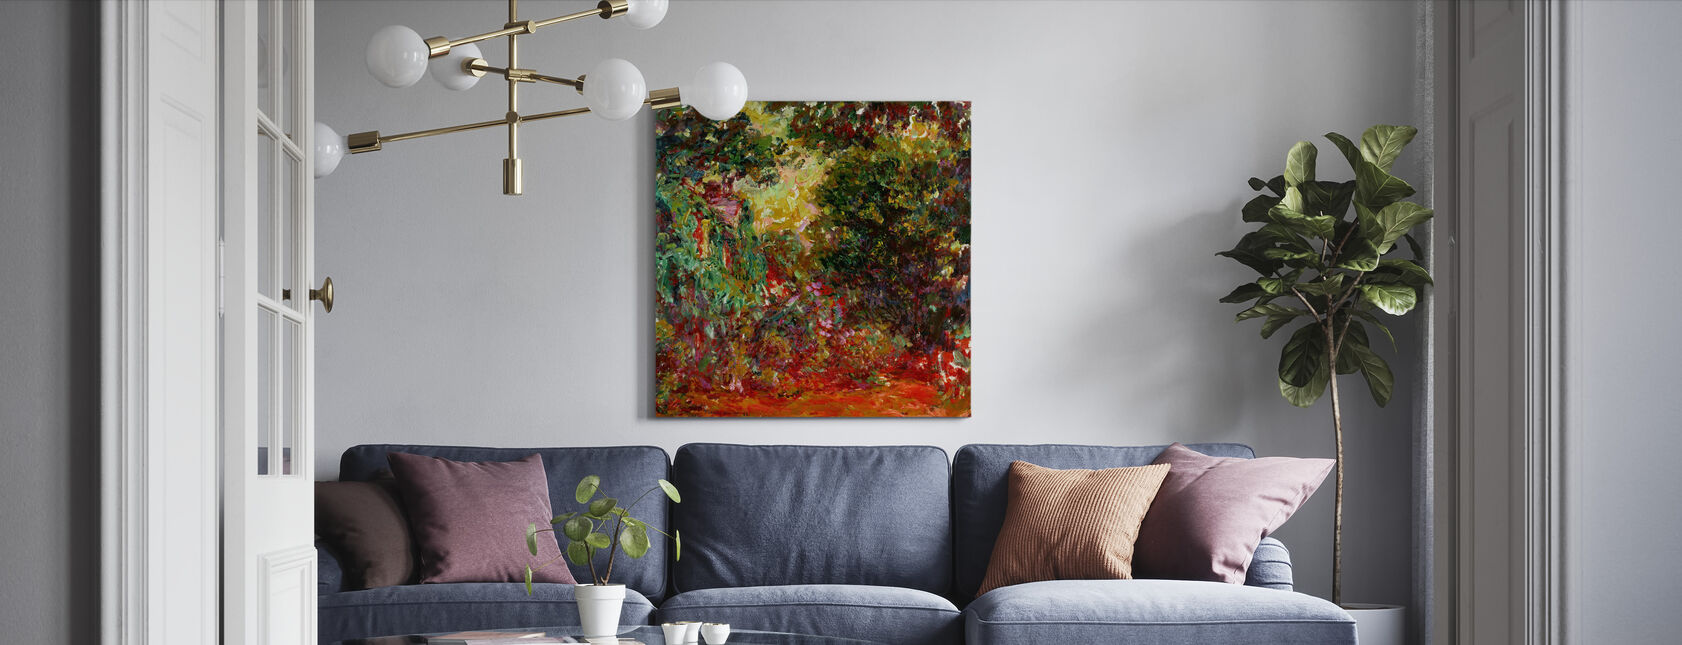 Rose Garden - Claude Monet - Canvas print - Living Room